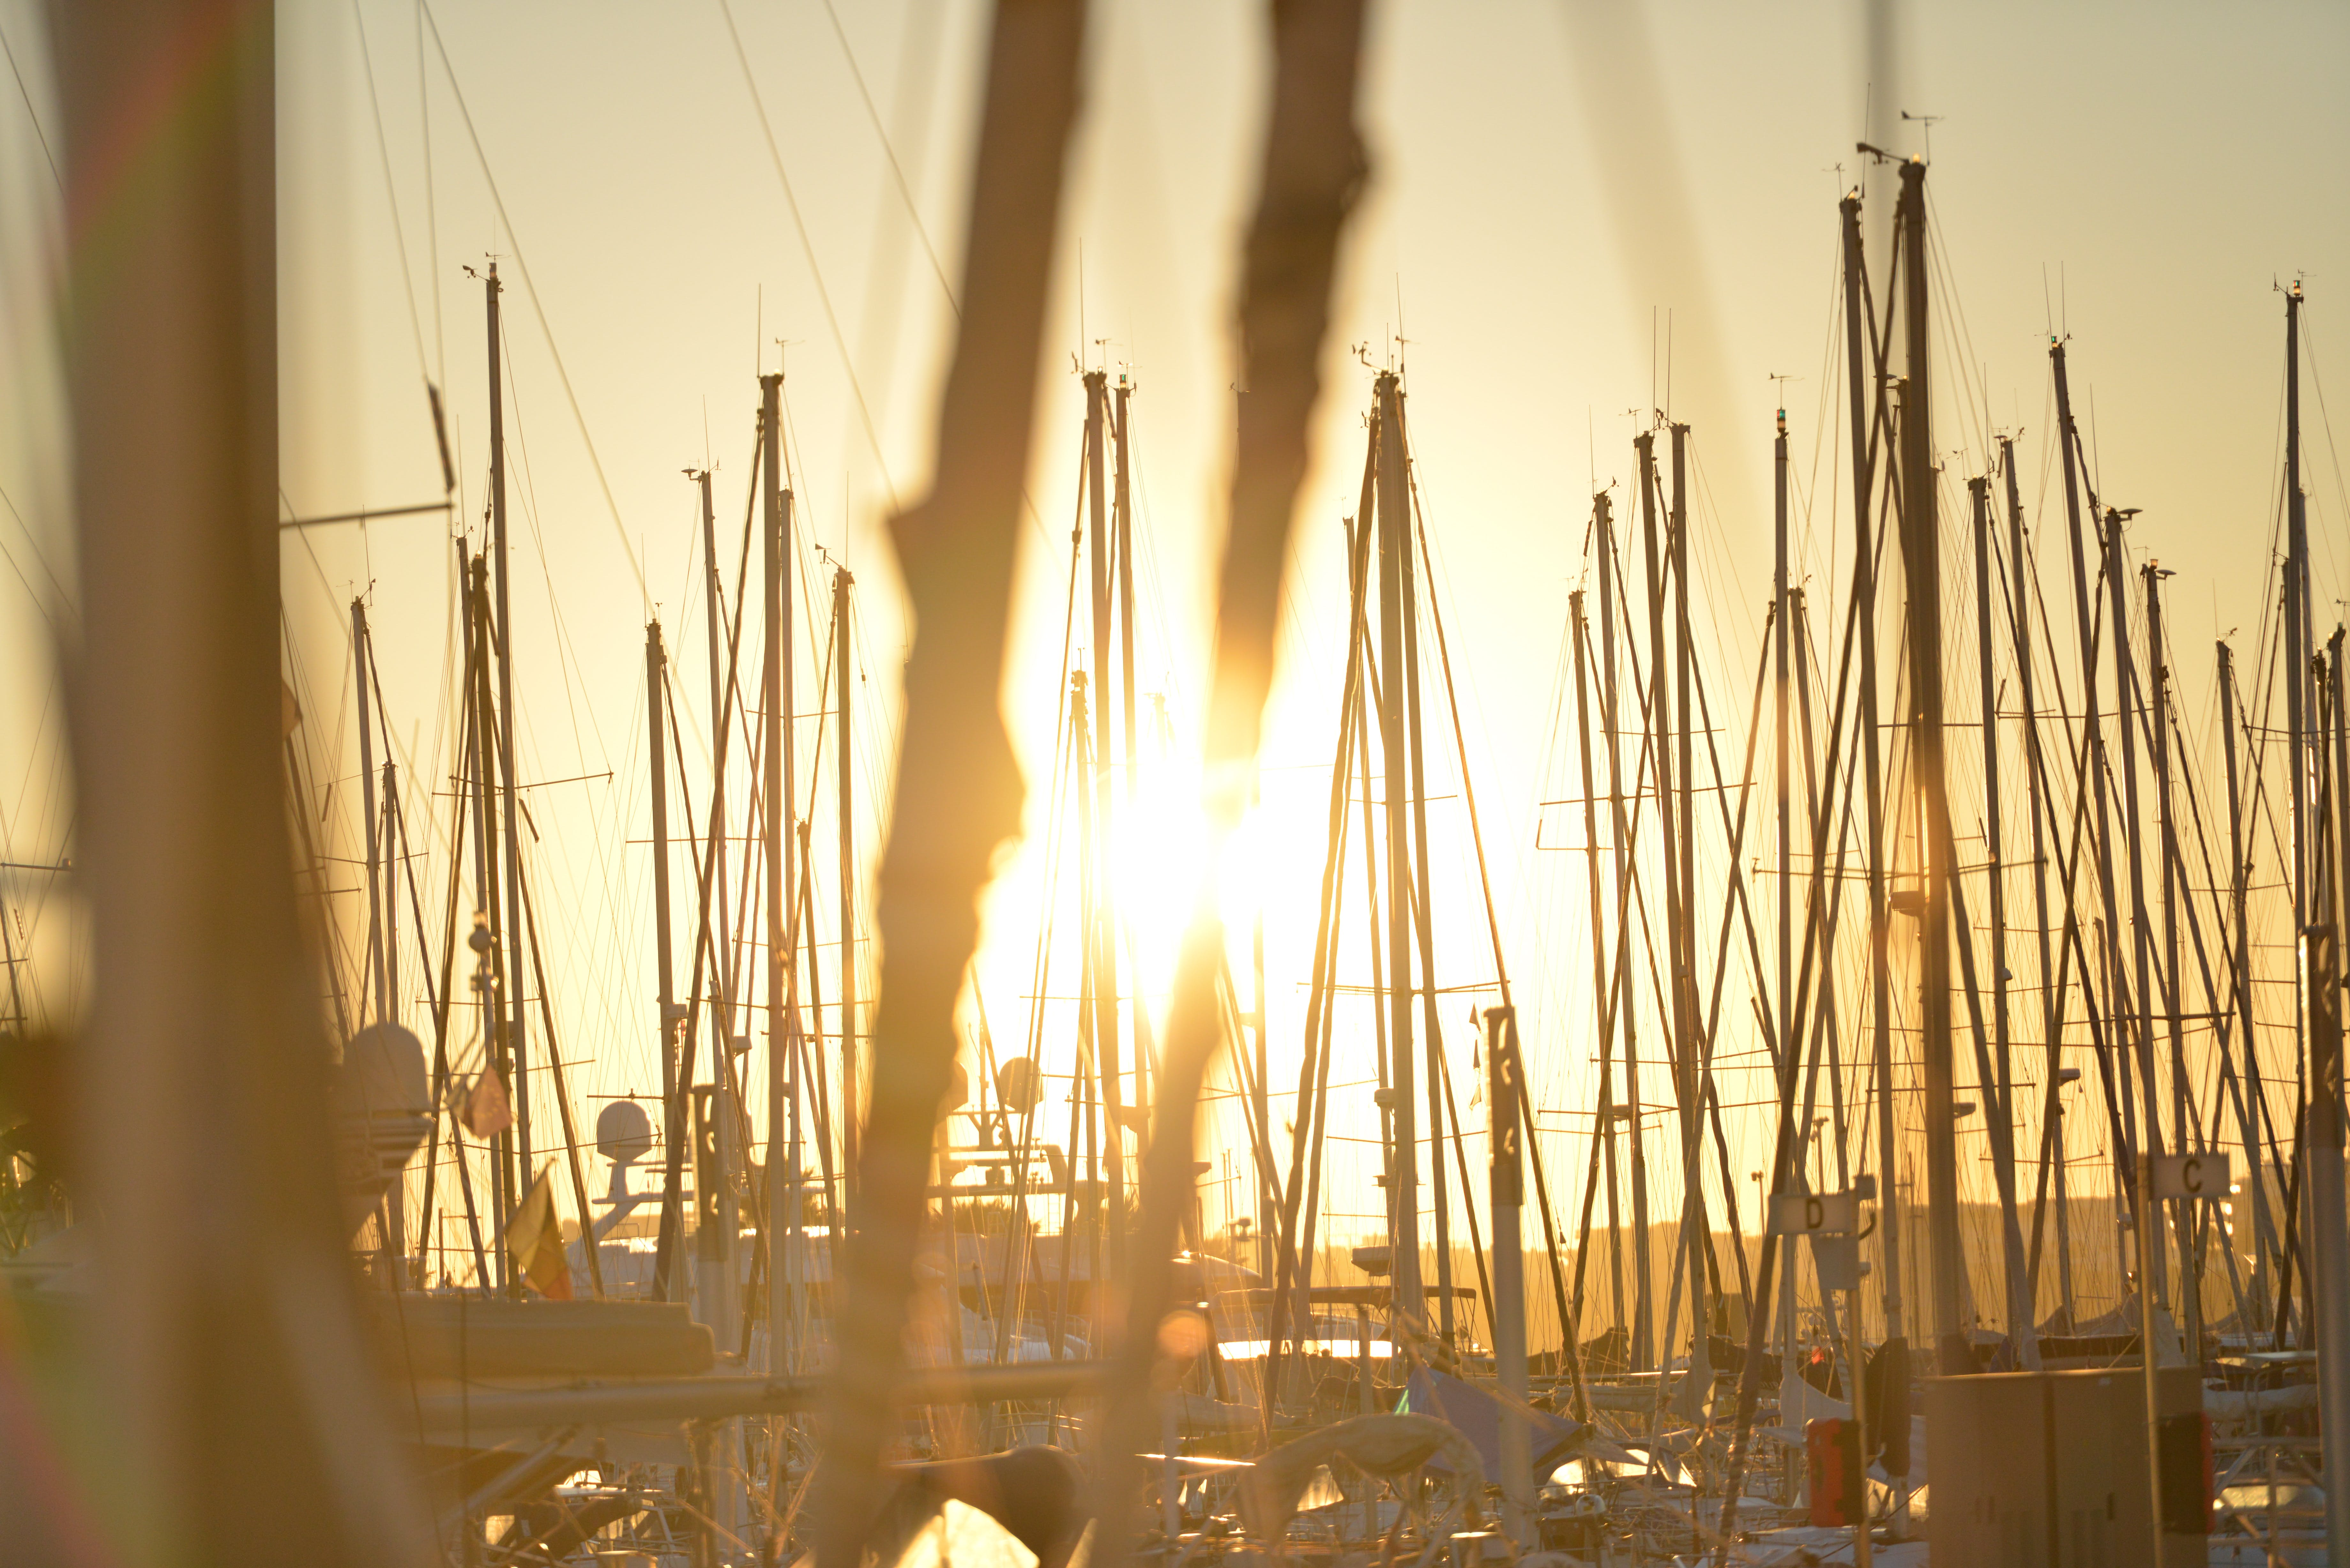 Lot of Sailboats during Golden Hour